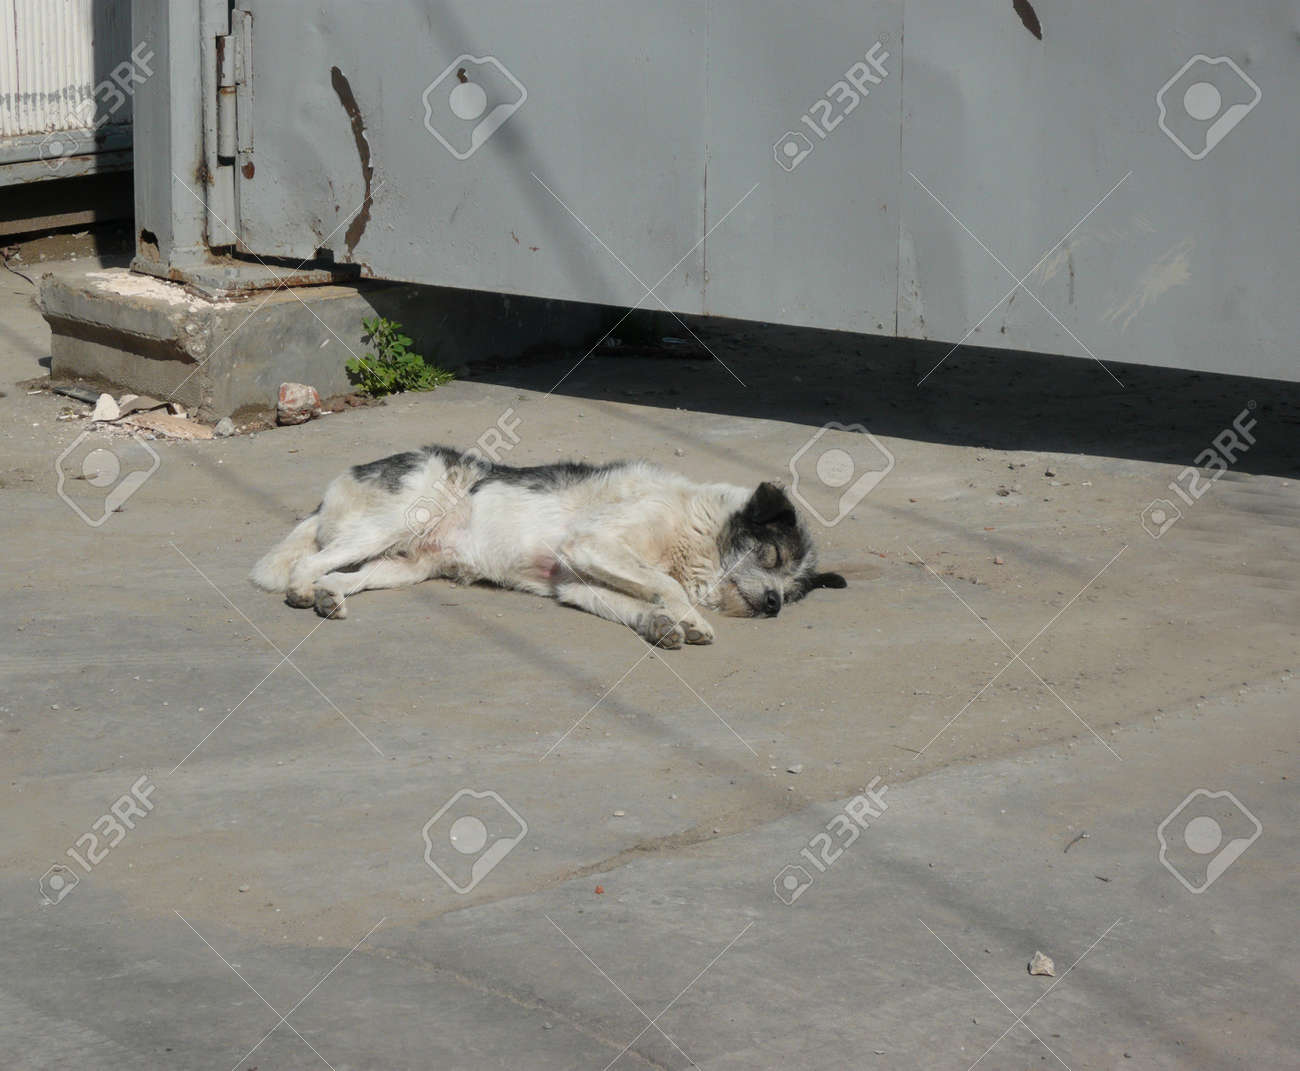 stray dogs on street at day Stock Photo - 14540099